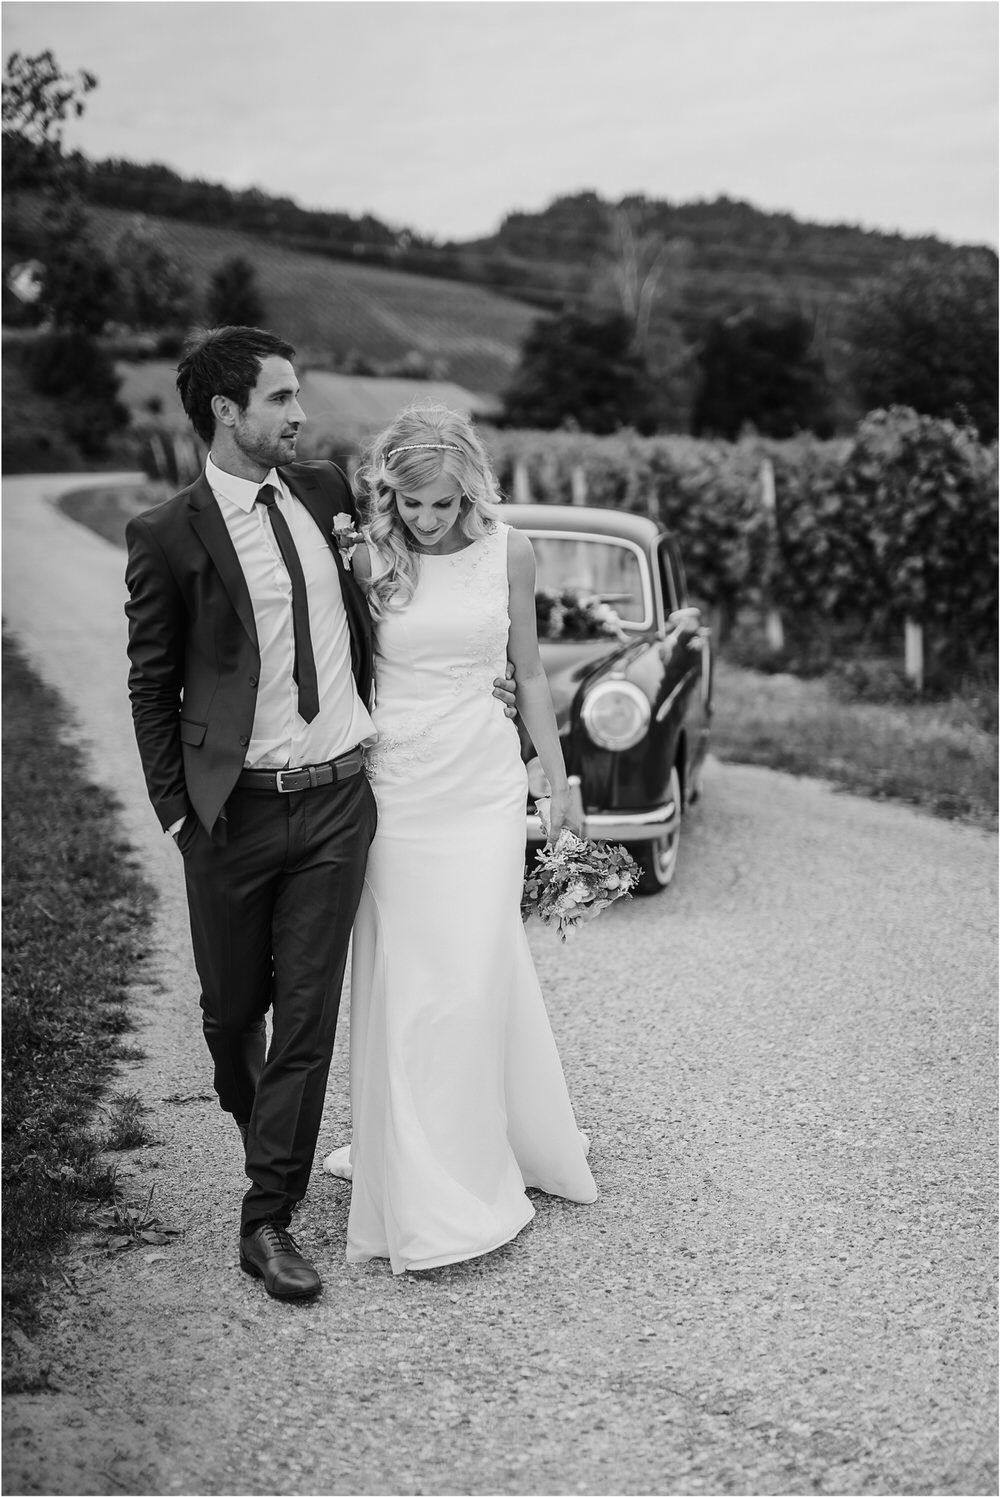 destination wedding italy greece ireland france uk photographer poroka poročni fotograf poročno fotografiranje gredič tri lučke bled tuscany 0223.jpg